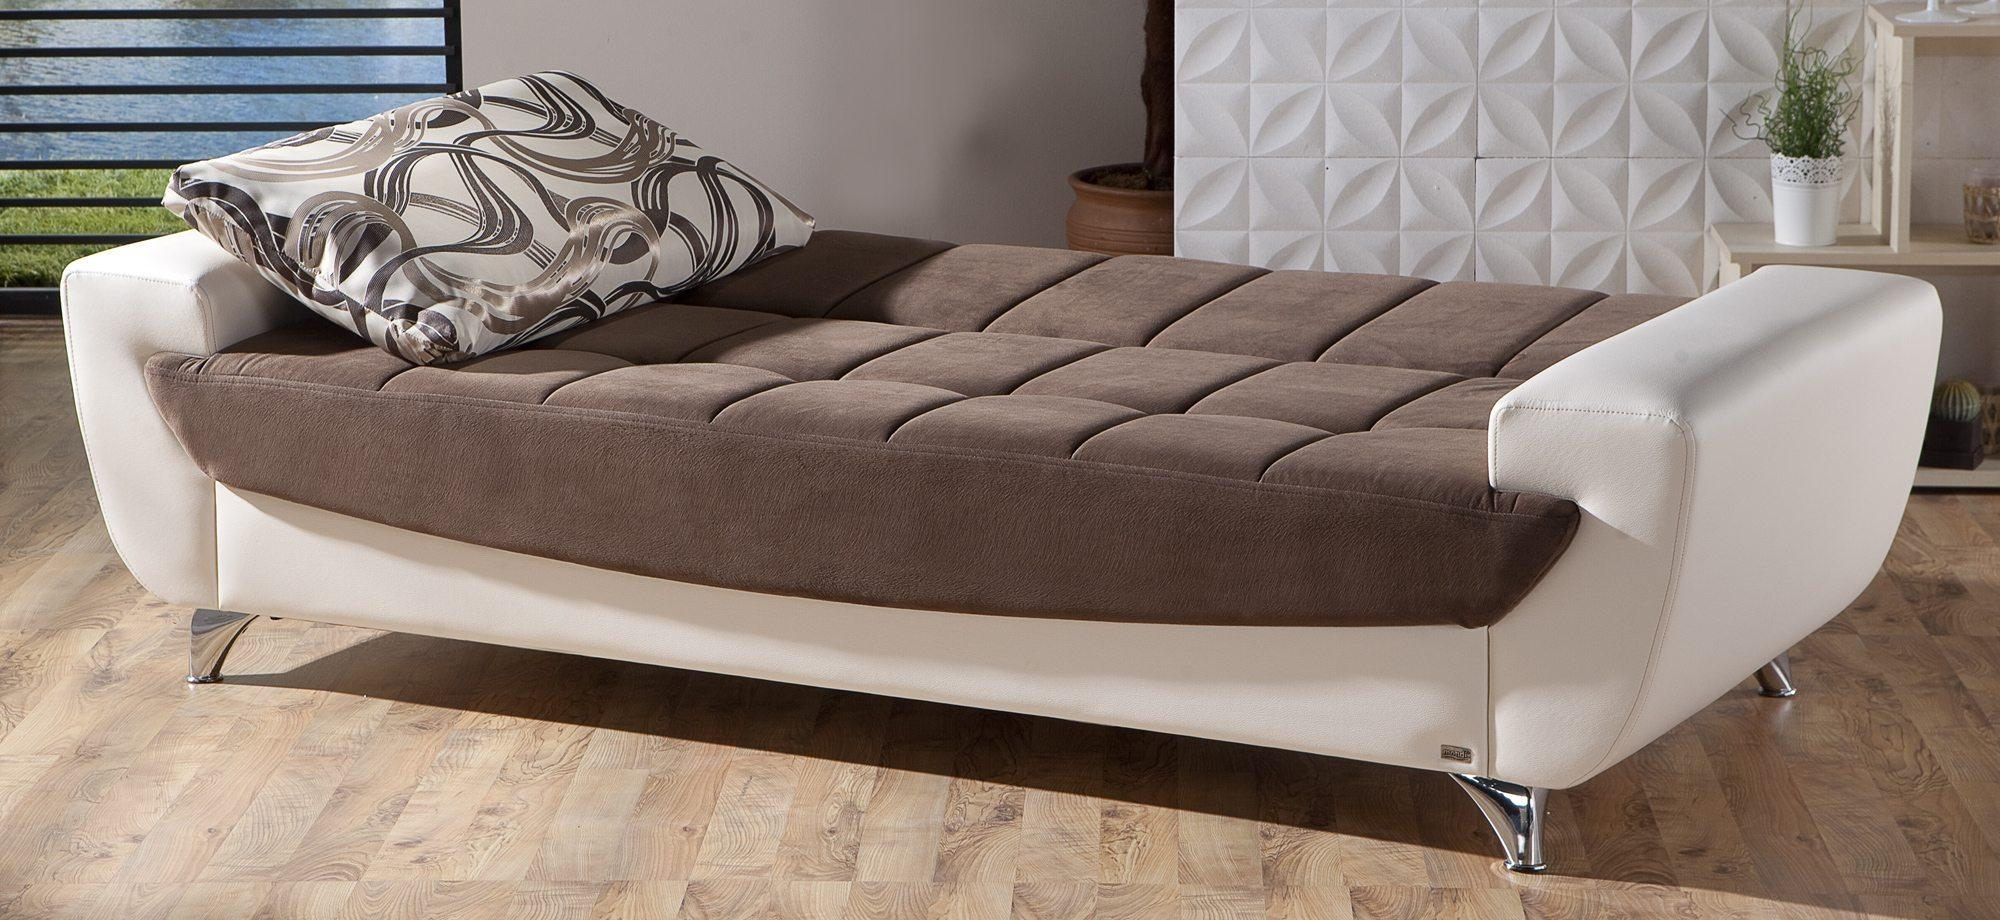 Furniture: Contemporary Futon Beds Target For Lovely Home In Target Couch Beds (View 4 of 20)